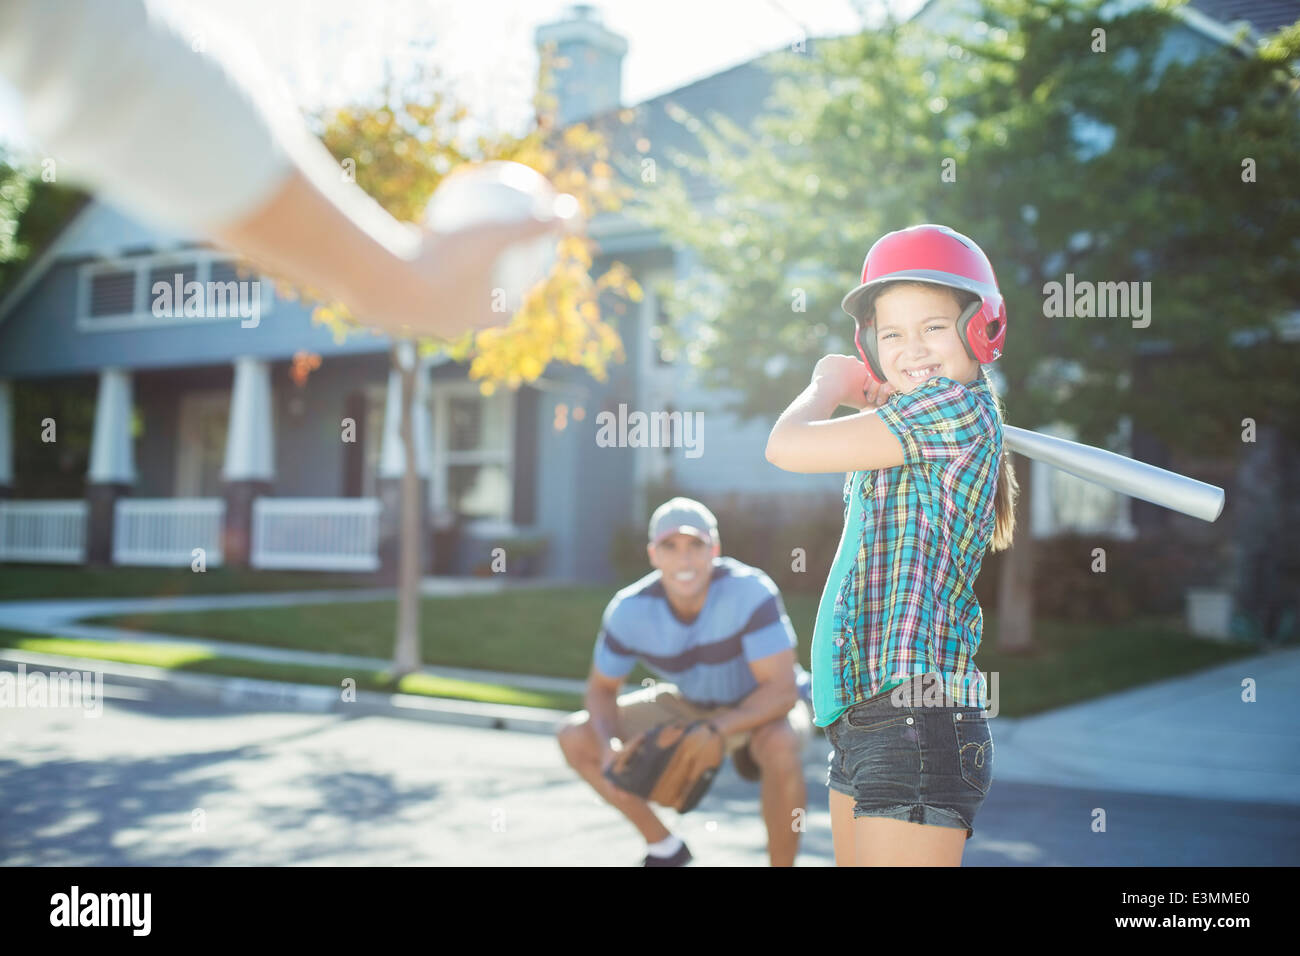 Family playing baseball in street - Stock Image